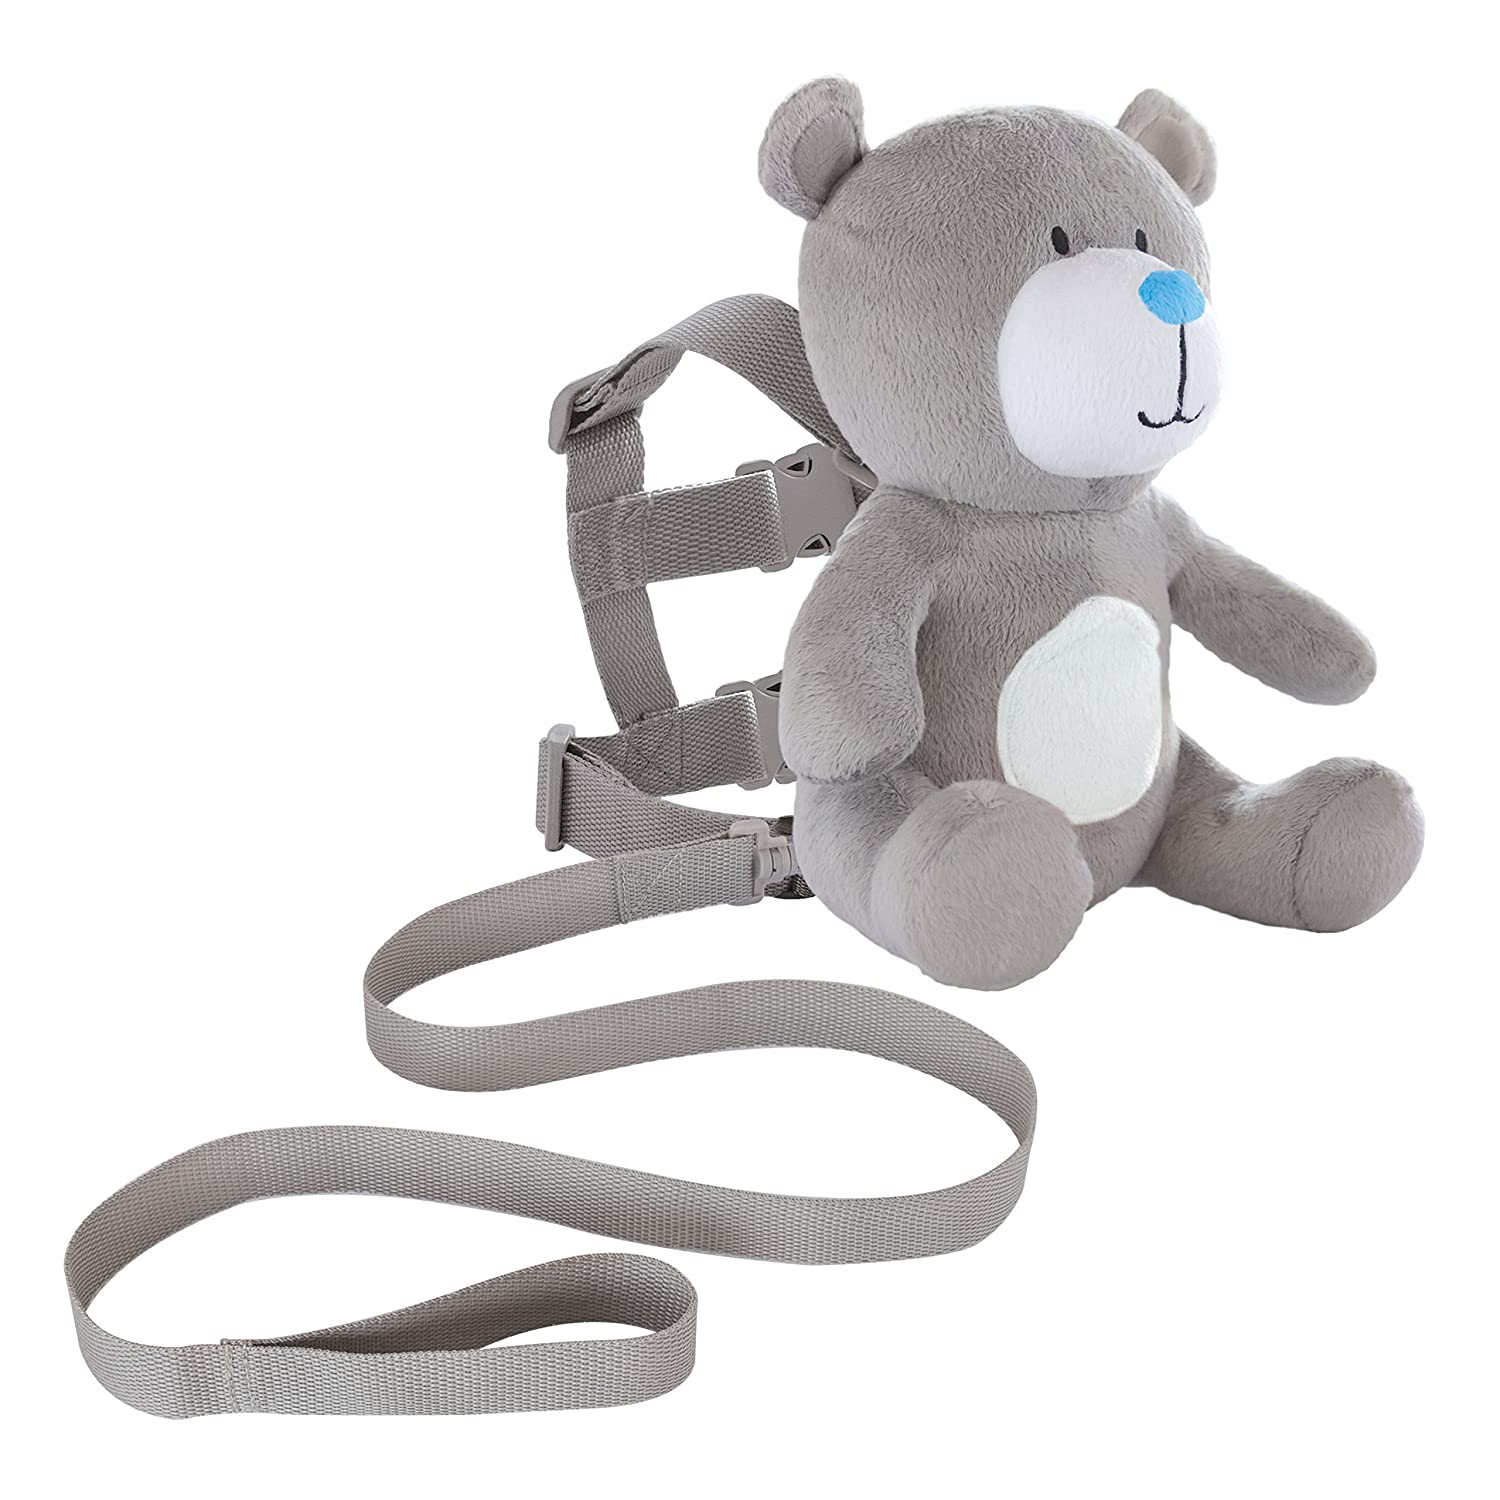 Goldbug - Animal 2 in 1 Child Safety Harness - Elephant ZZ54407-1SZ-AST